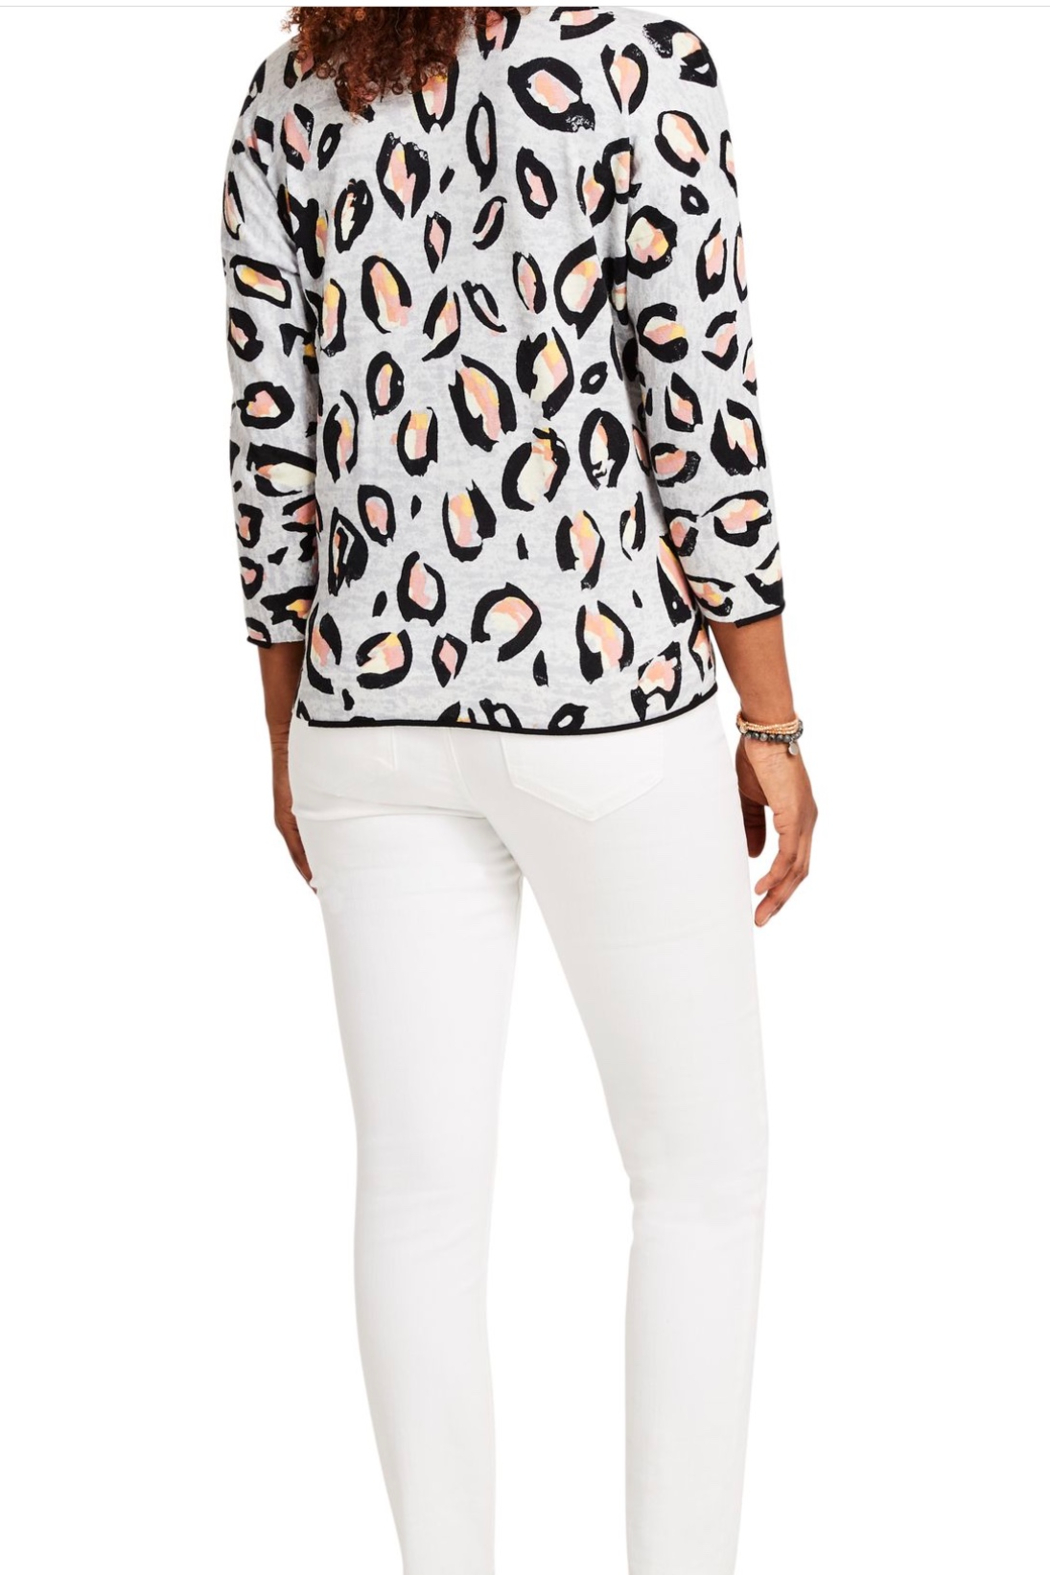 Nic + Zoe Pink Multi Knit Top, 3/4 sleeves. V-neck. - Side Cropped Image